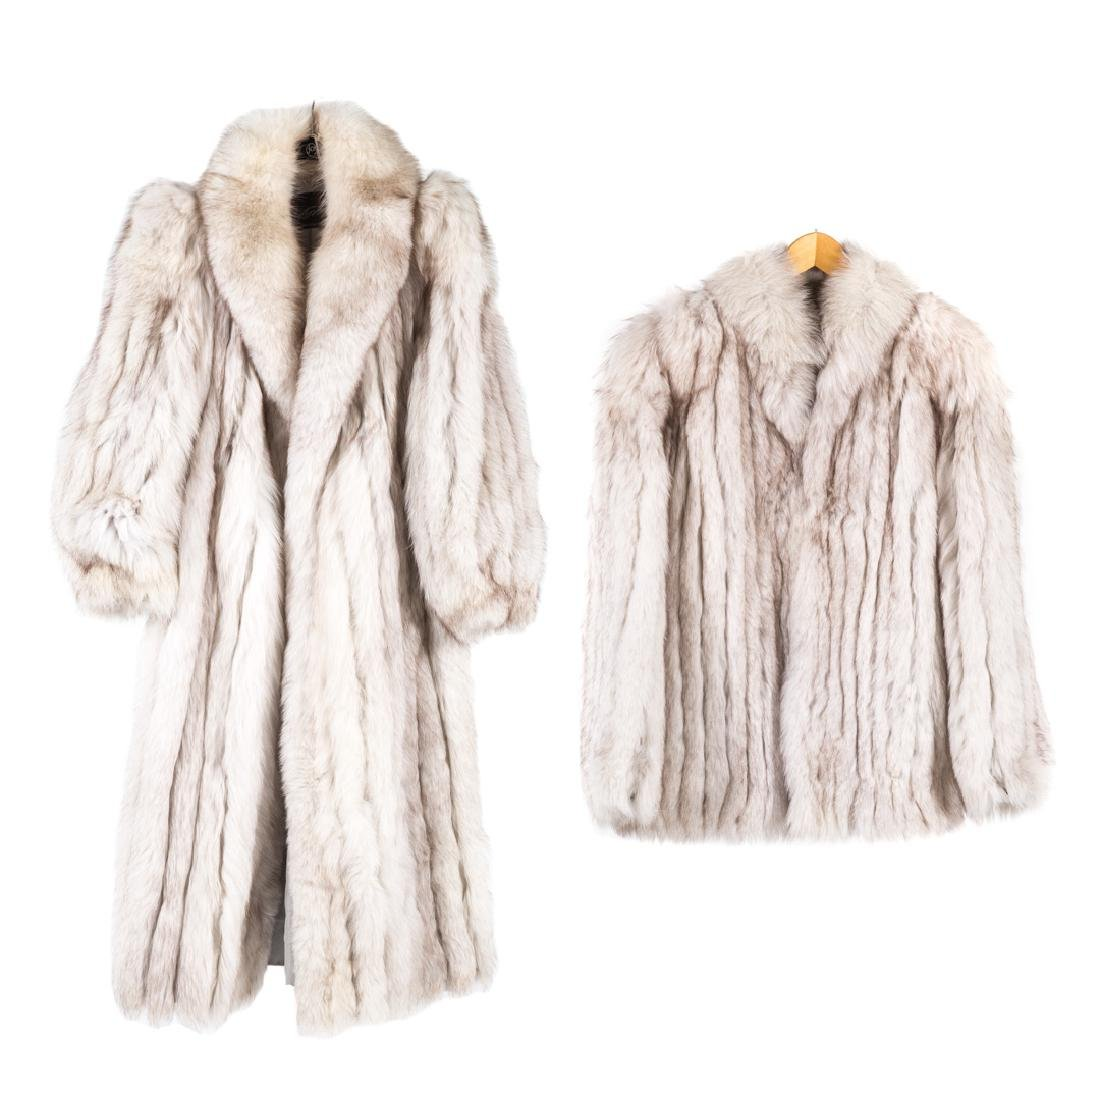 Two Lady's White/Silver Fox Coats